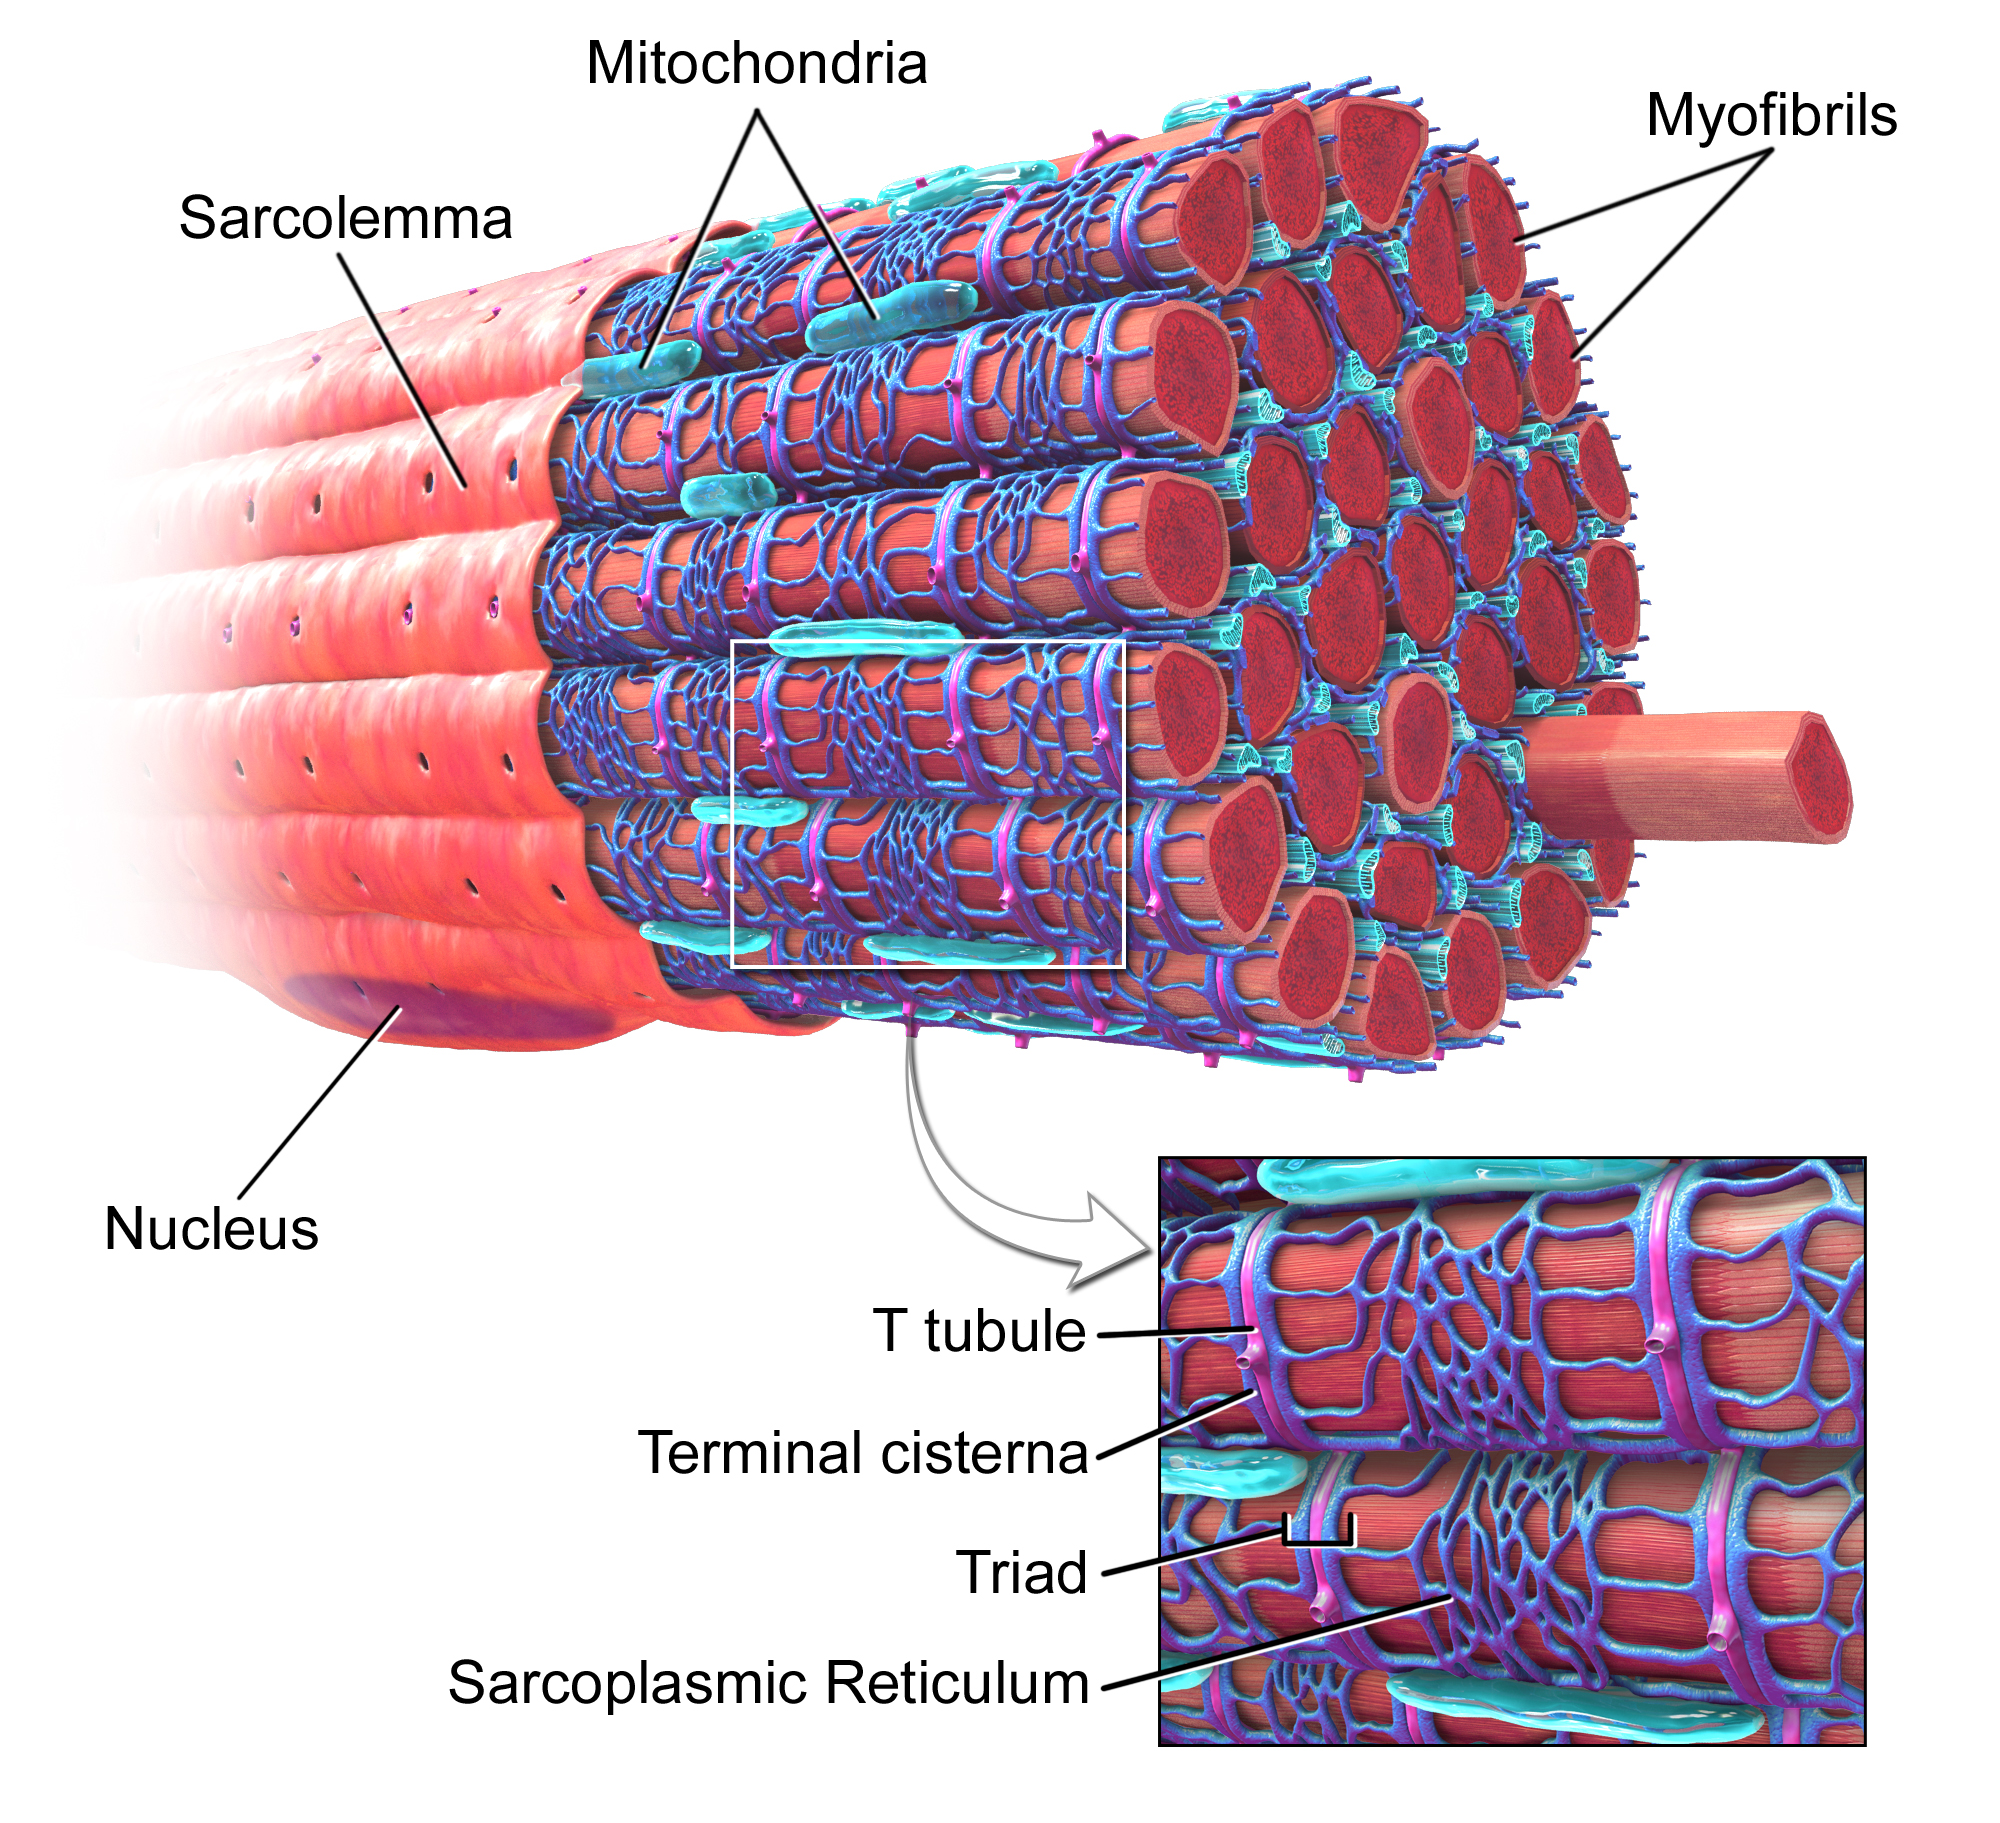 Skeletal Muscle fiber with T-tubules